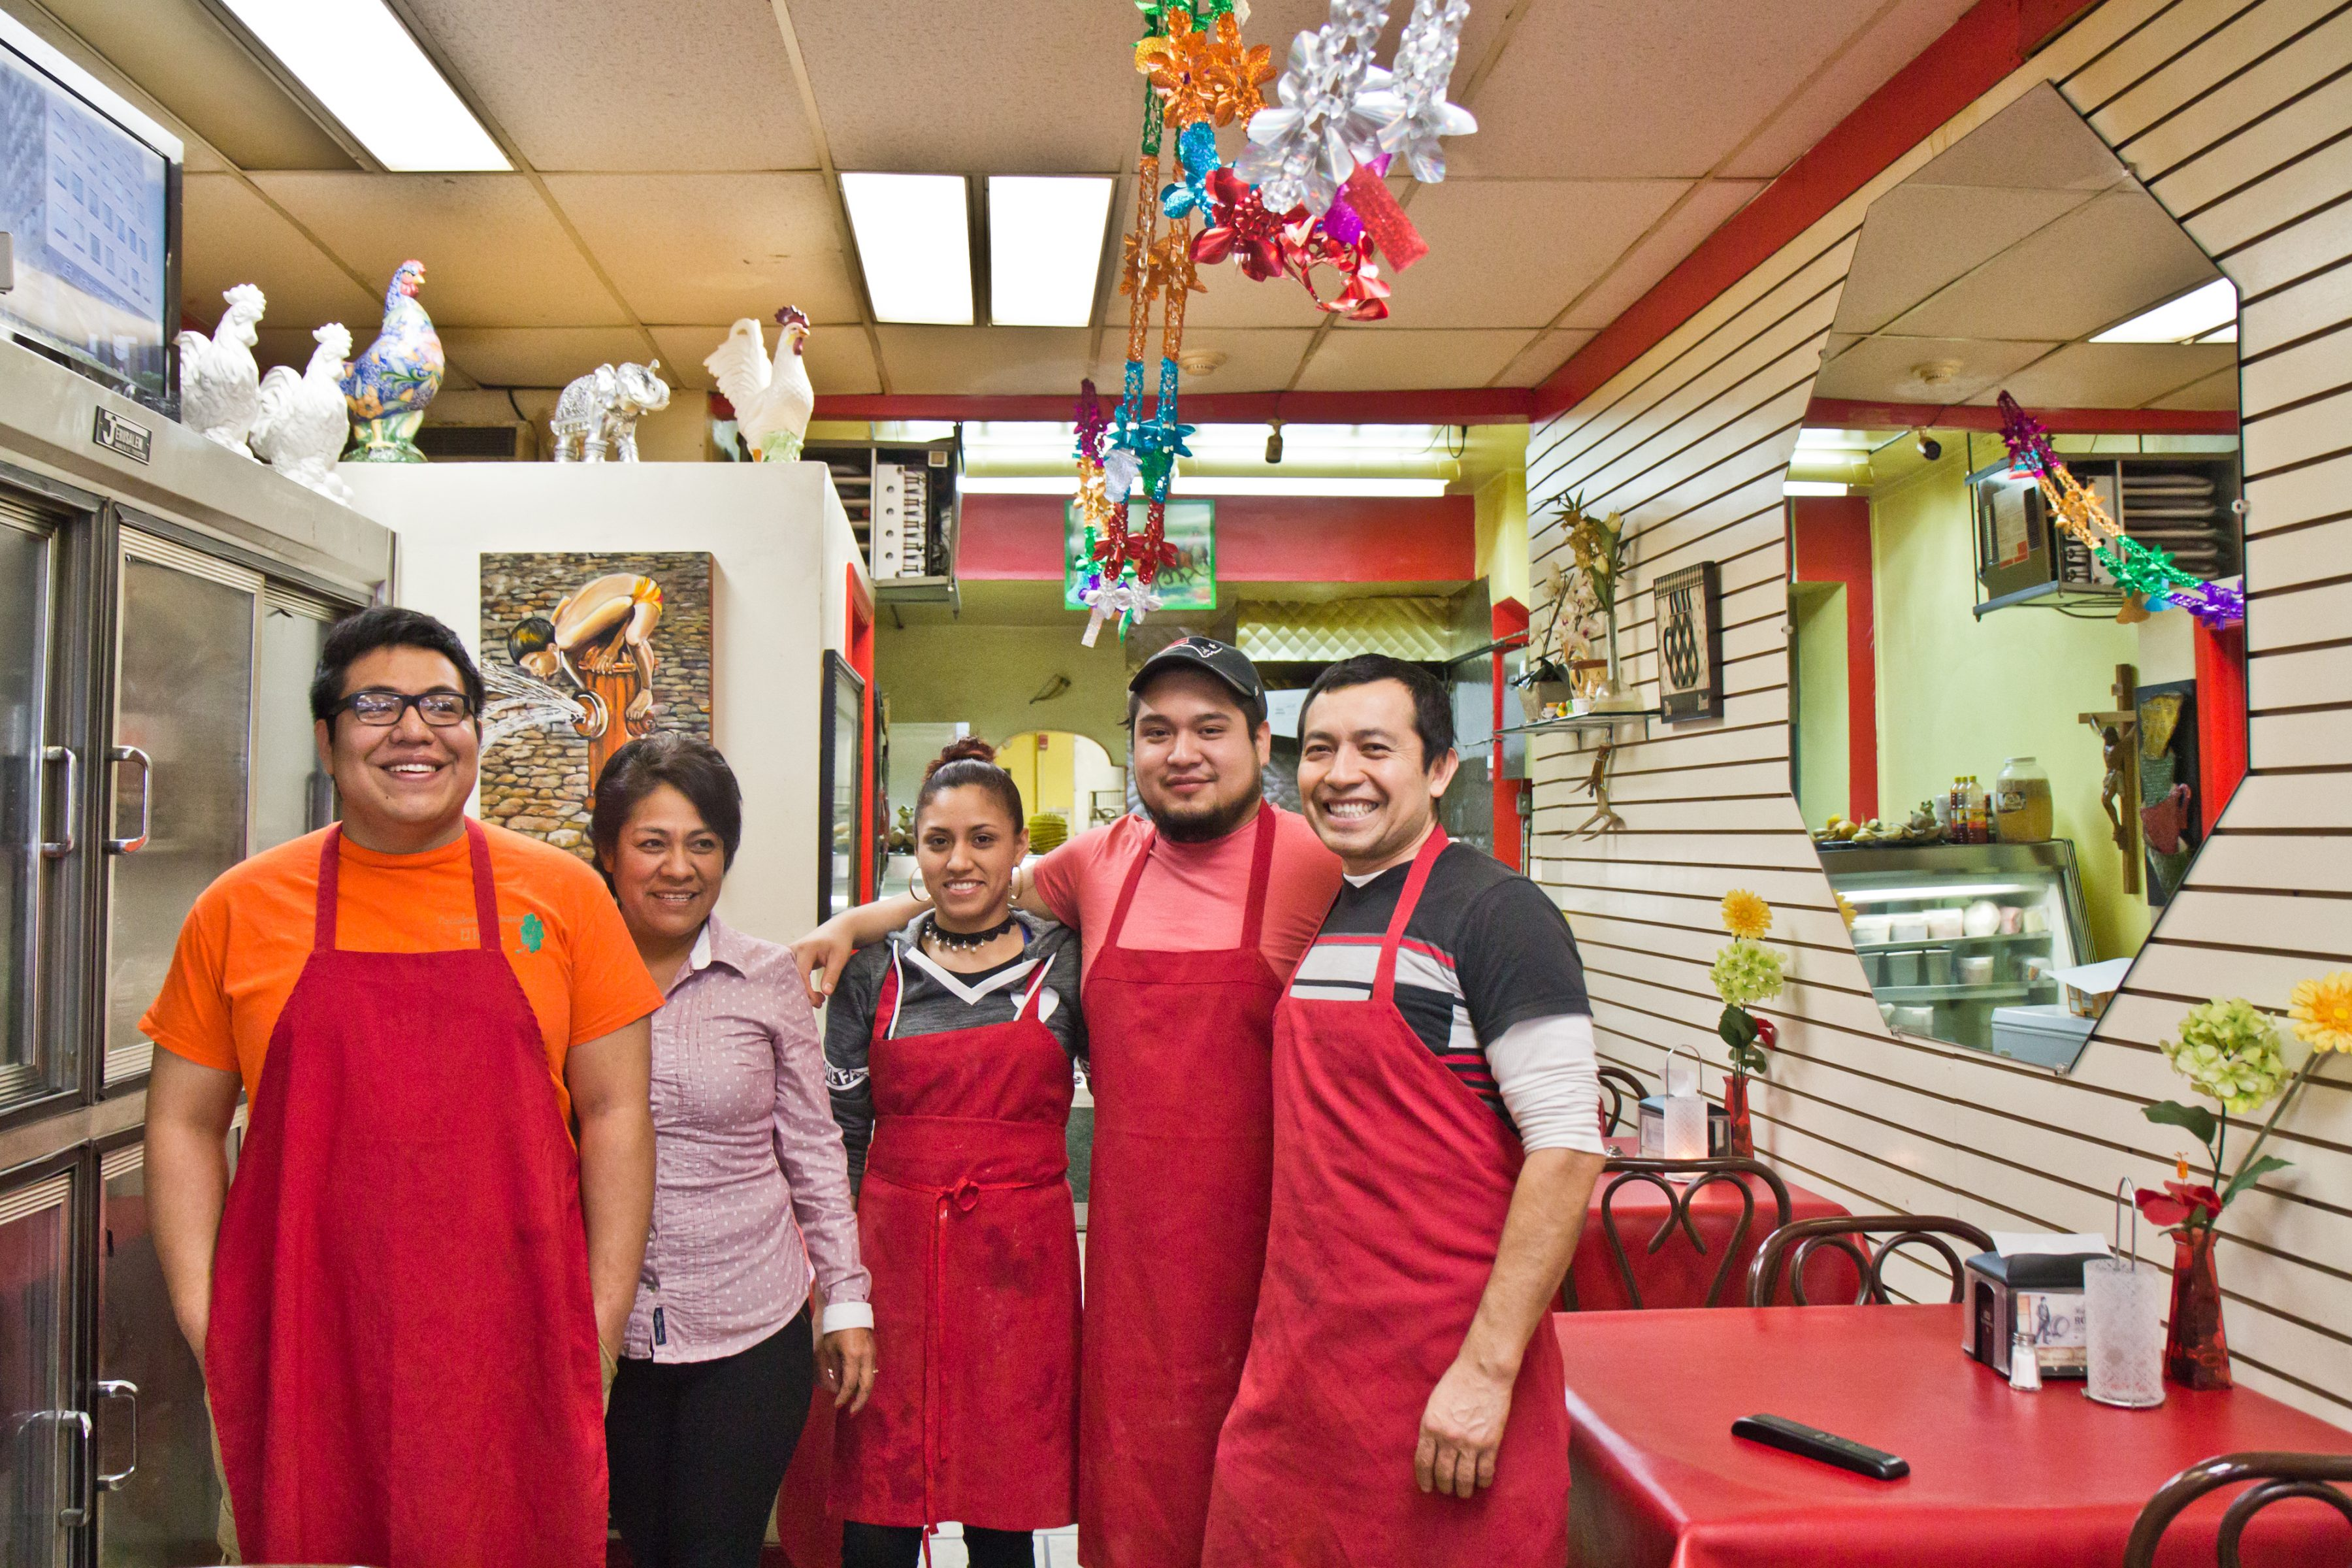 The Macias family, owners of Panaderia Mexicana El Trebol, have lived in Olney for 20 years.